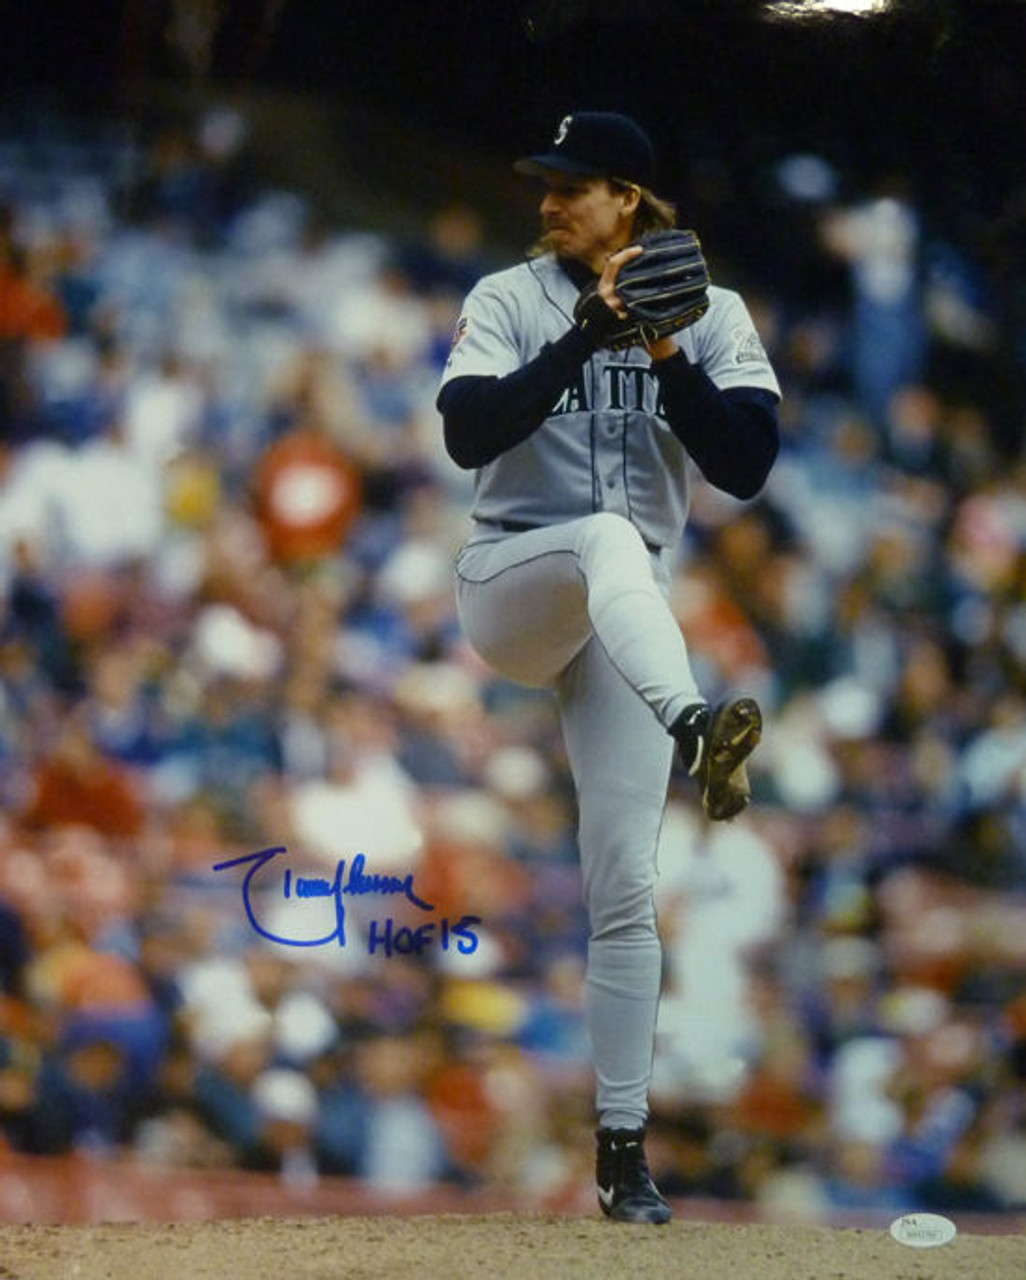 3b74a926cb Randy Johnson Autographed Seattle Mariners 16x20 Photo HOF JSA